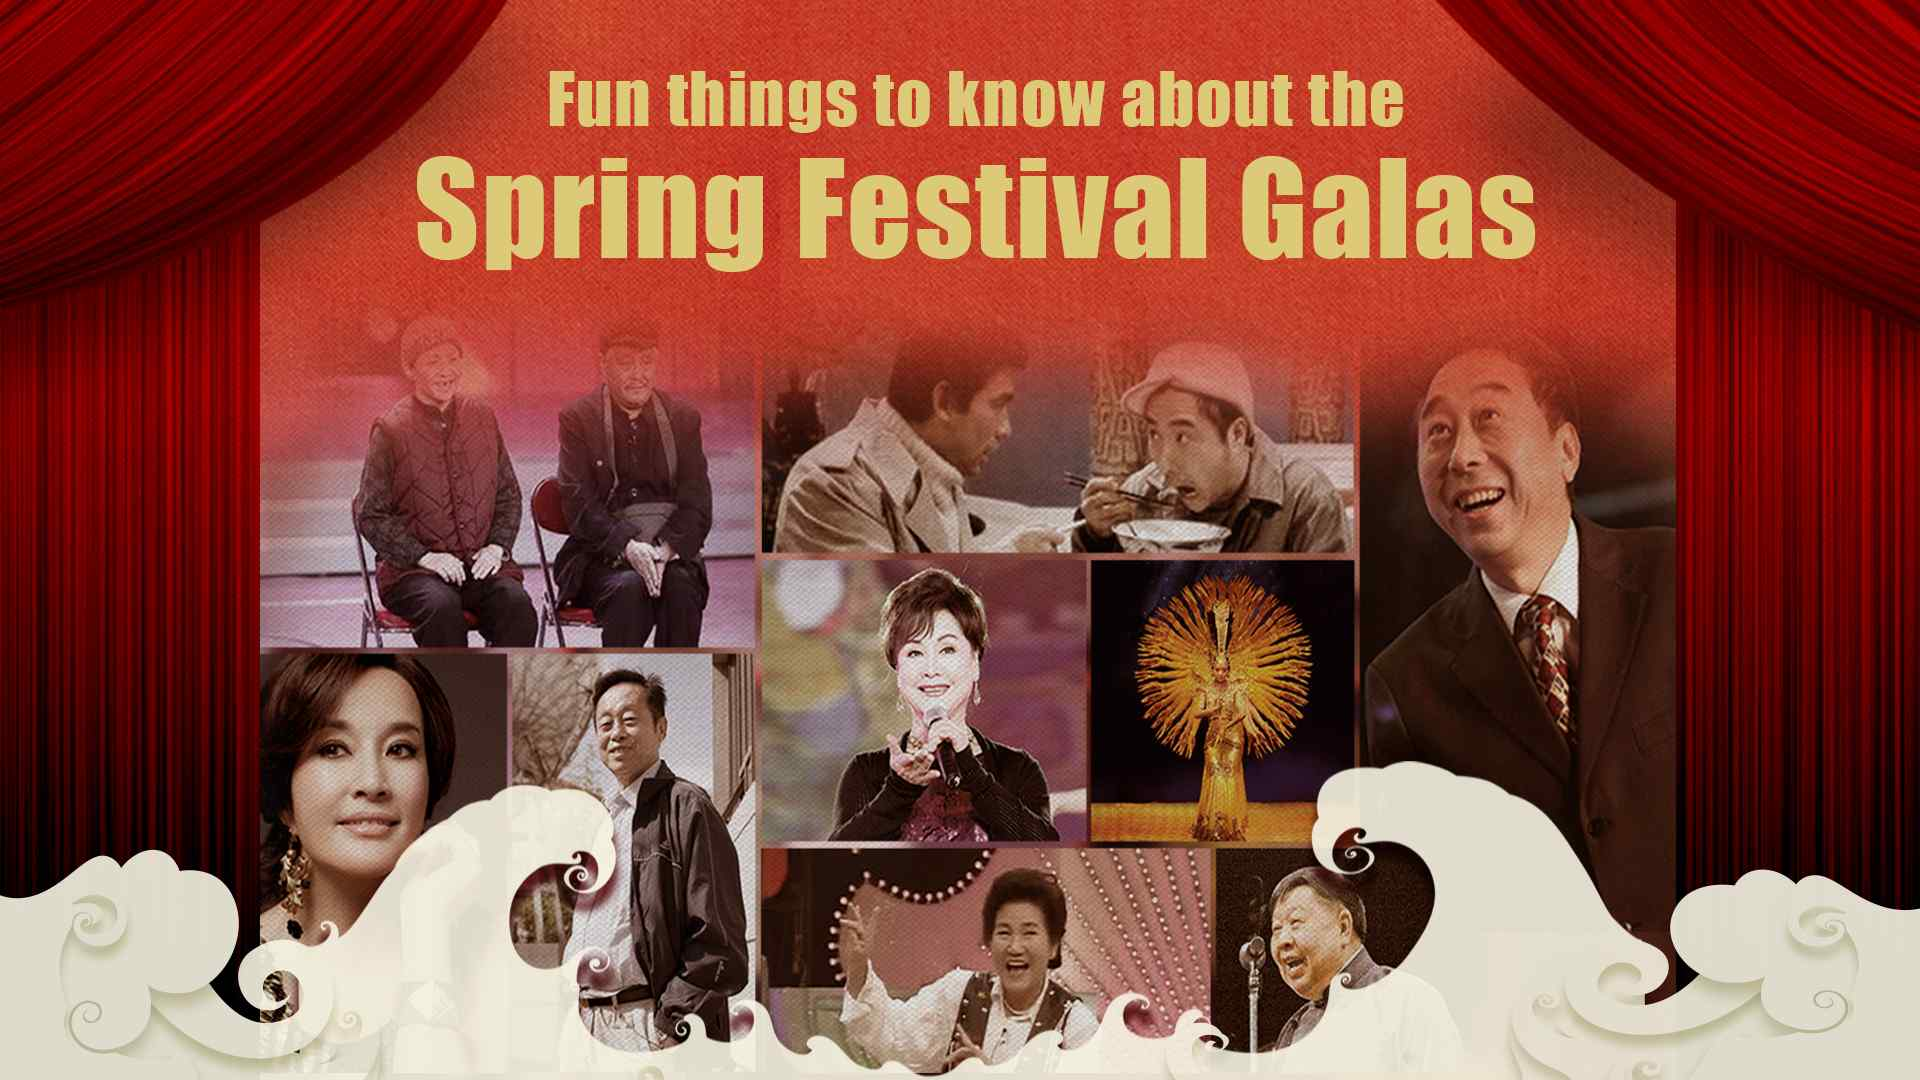 Fun things to know about the Spring Festival Galas